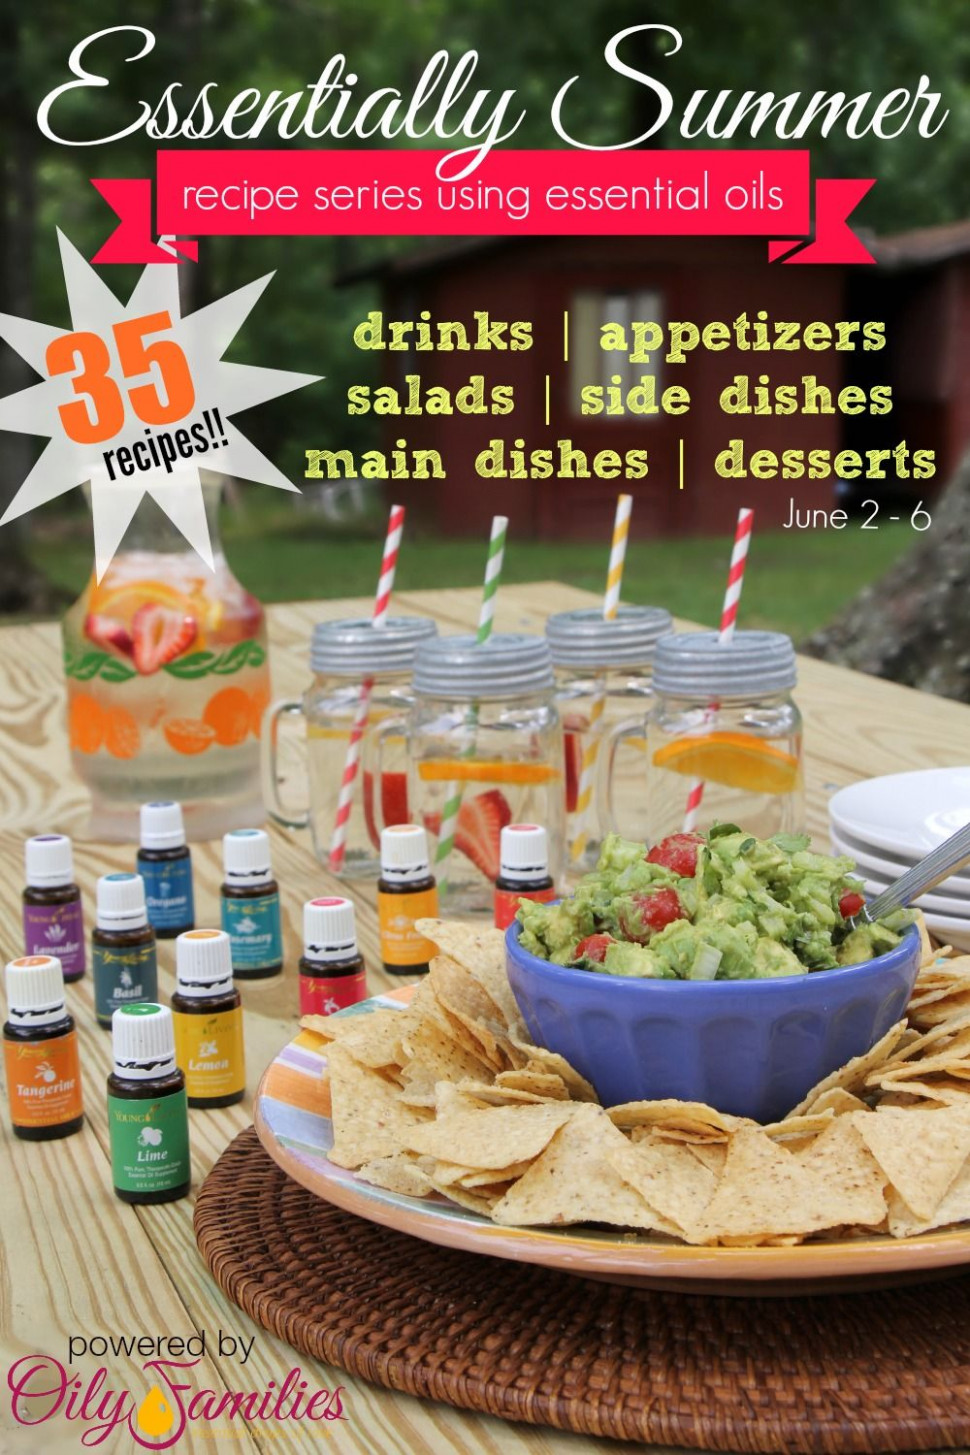 Pin on Get Oily - food recipes using essential oils